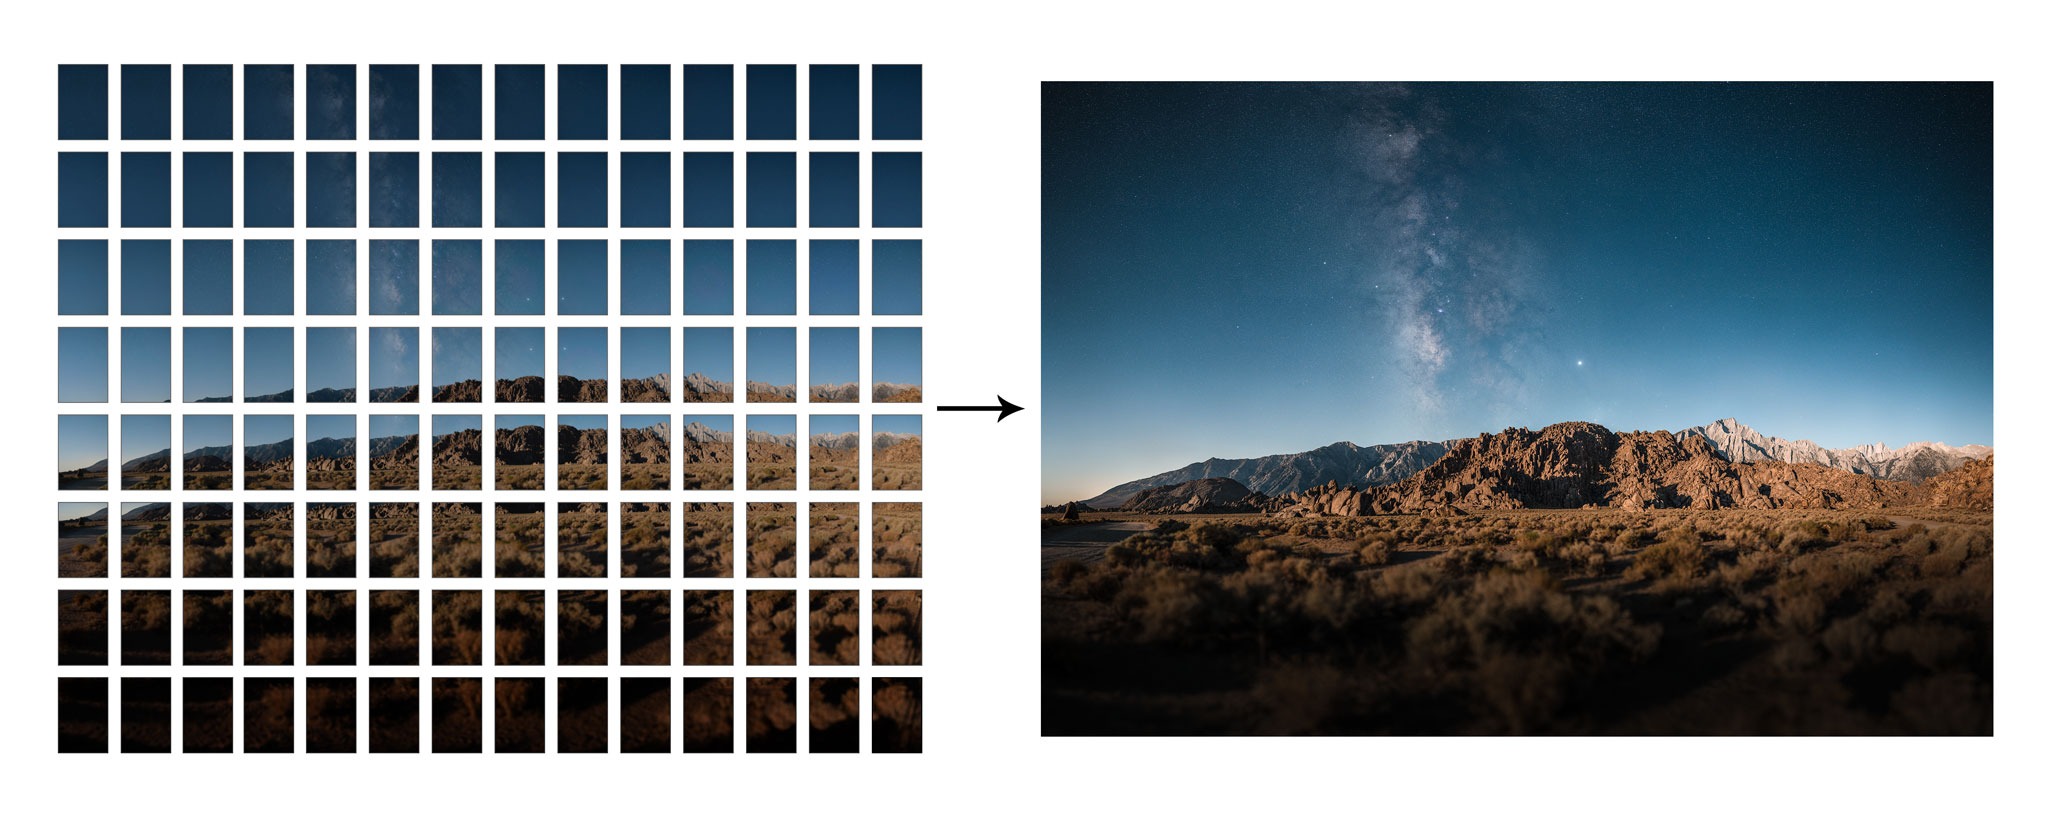 Large format astrophotography multi-row panorama